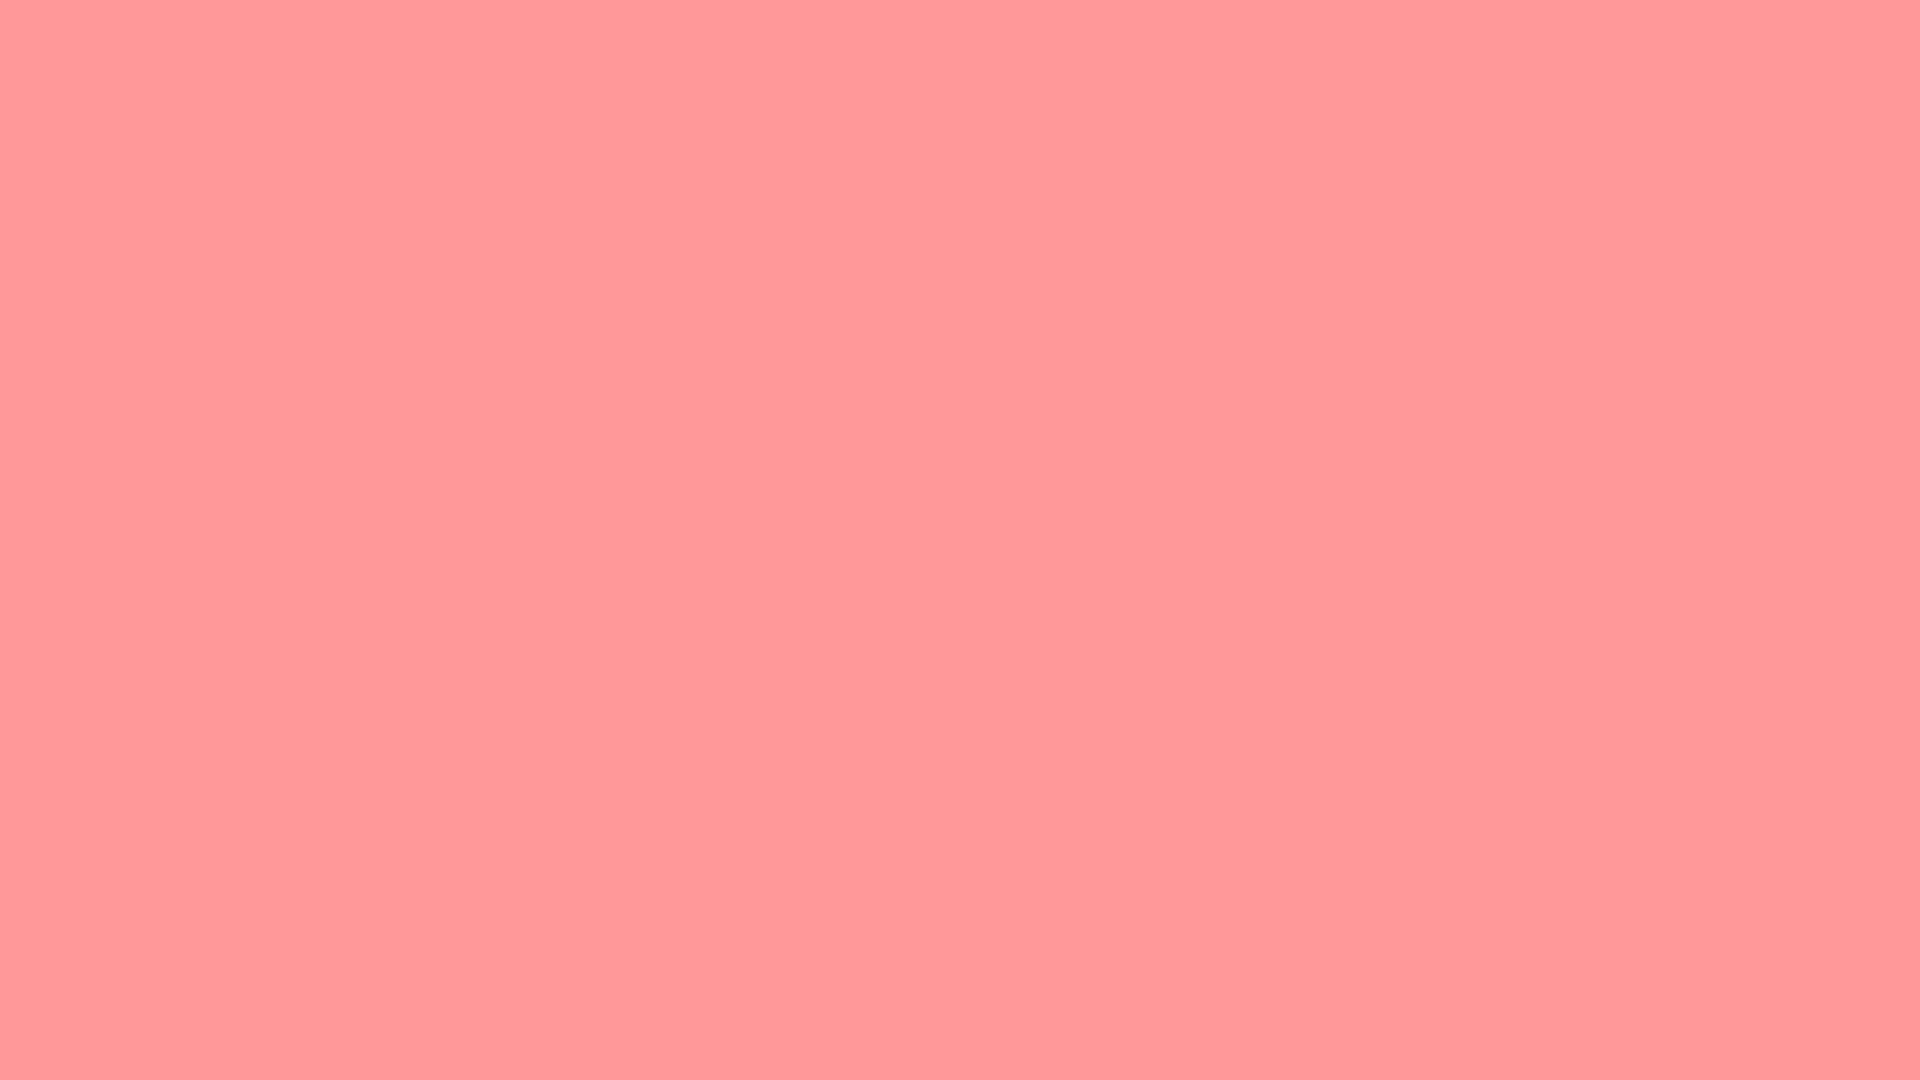 1920x1080 Light Salmon Pink Solid Color Background